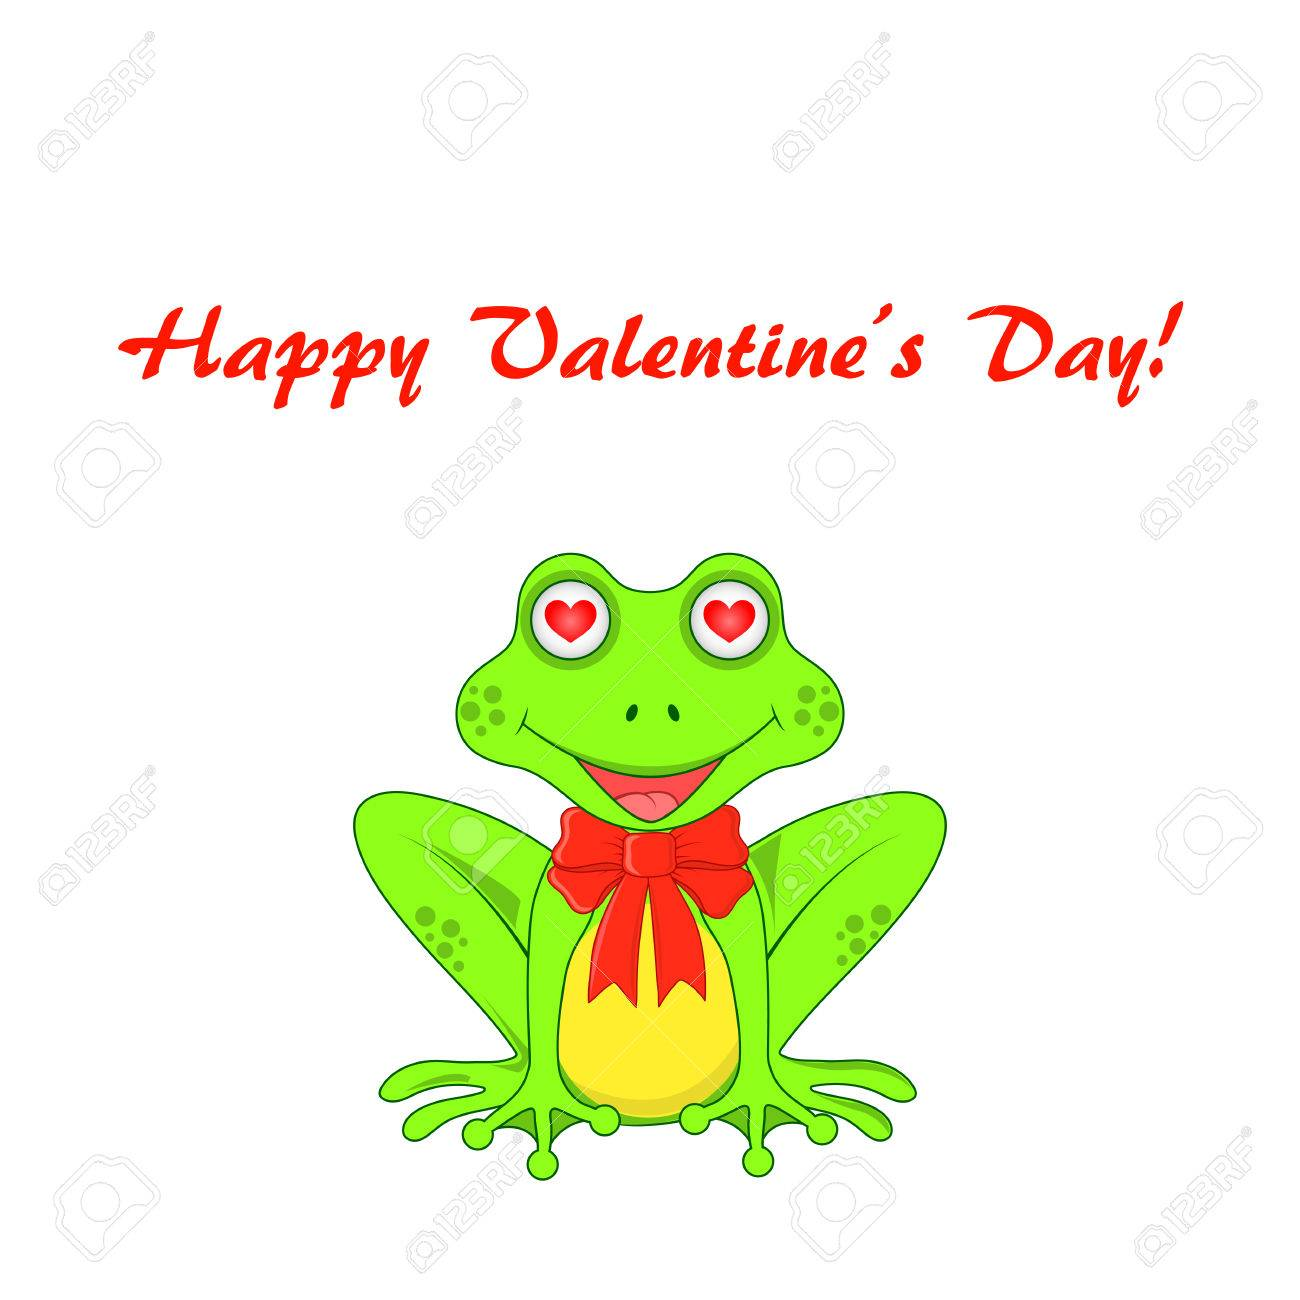 postcard on valentines day with frogs isolated royalty free cliparts rh 123rf com Frog Silhouette Tree Frog Vector